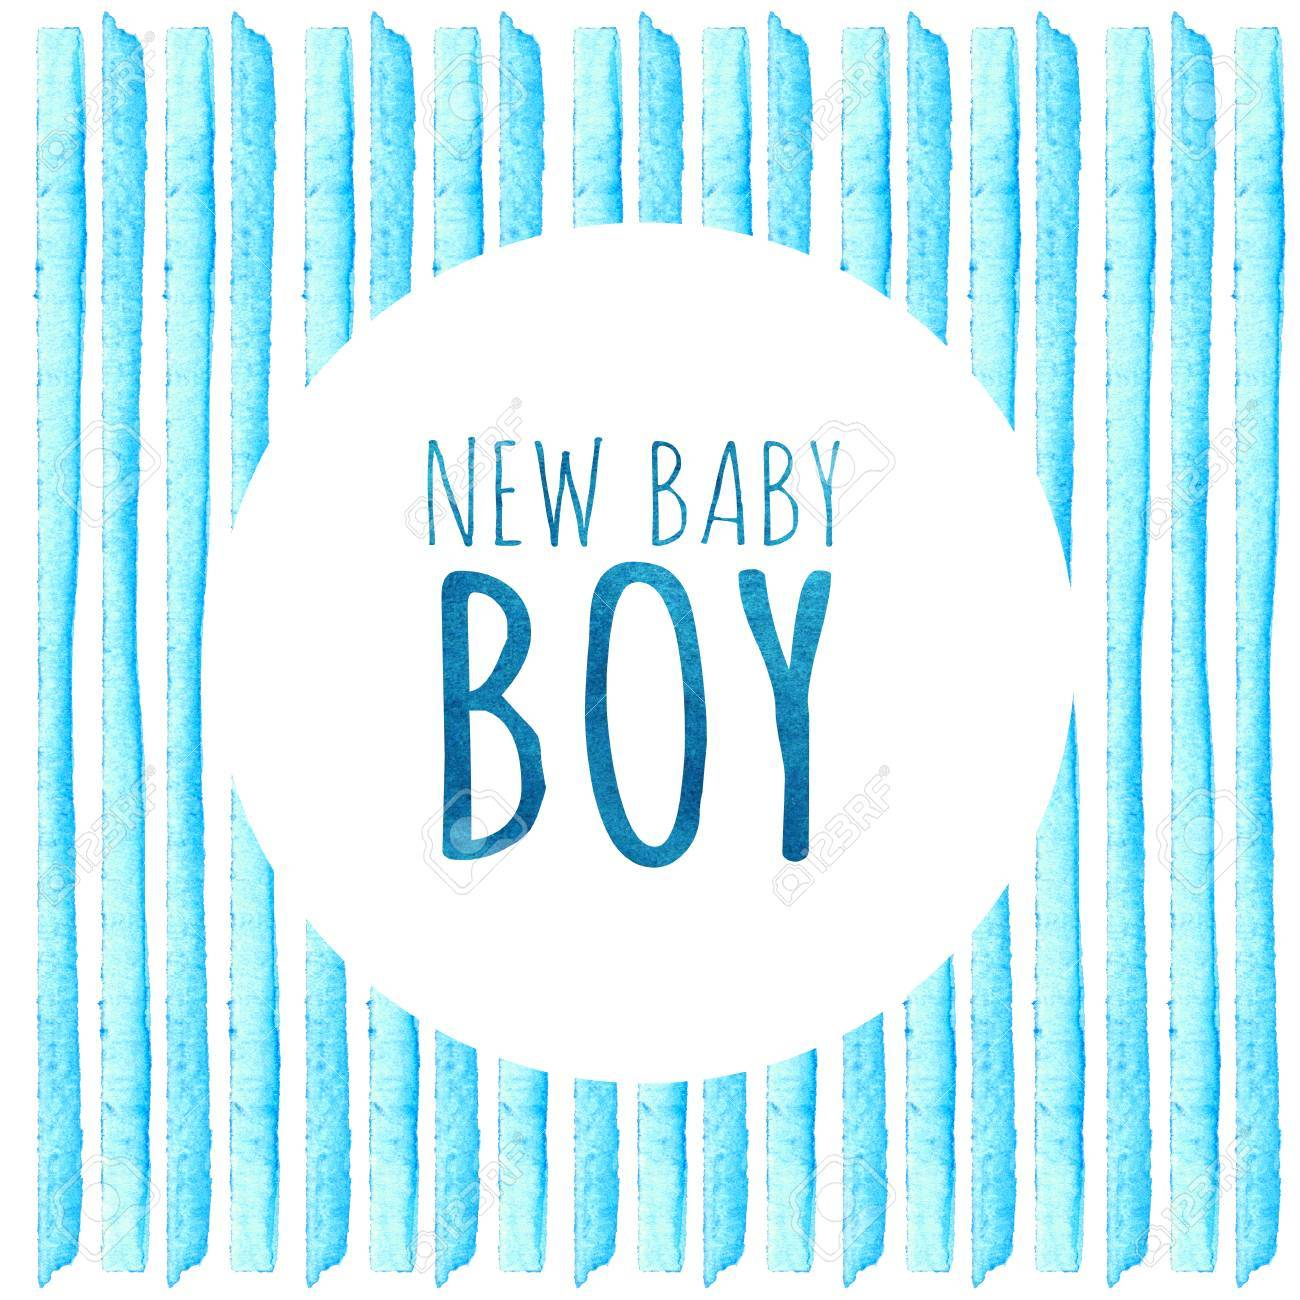 Phantasy 66720396 Baby Shower Invitation Card It S A Boy New Baby Boy Baby Shower Greeting Card Watercolor Gr Boy Baby Shower Invitations Walmart Boy Baby Shower Invitations Elephants baby shower Boy Baby Shower Invitations